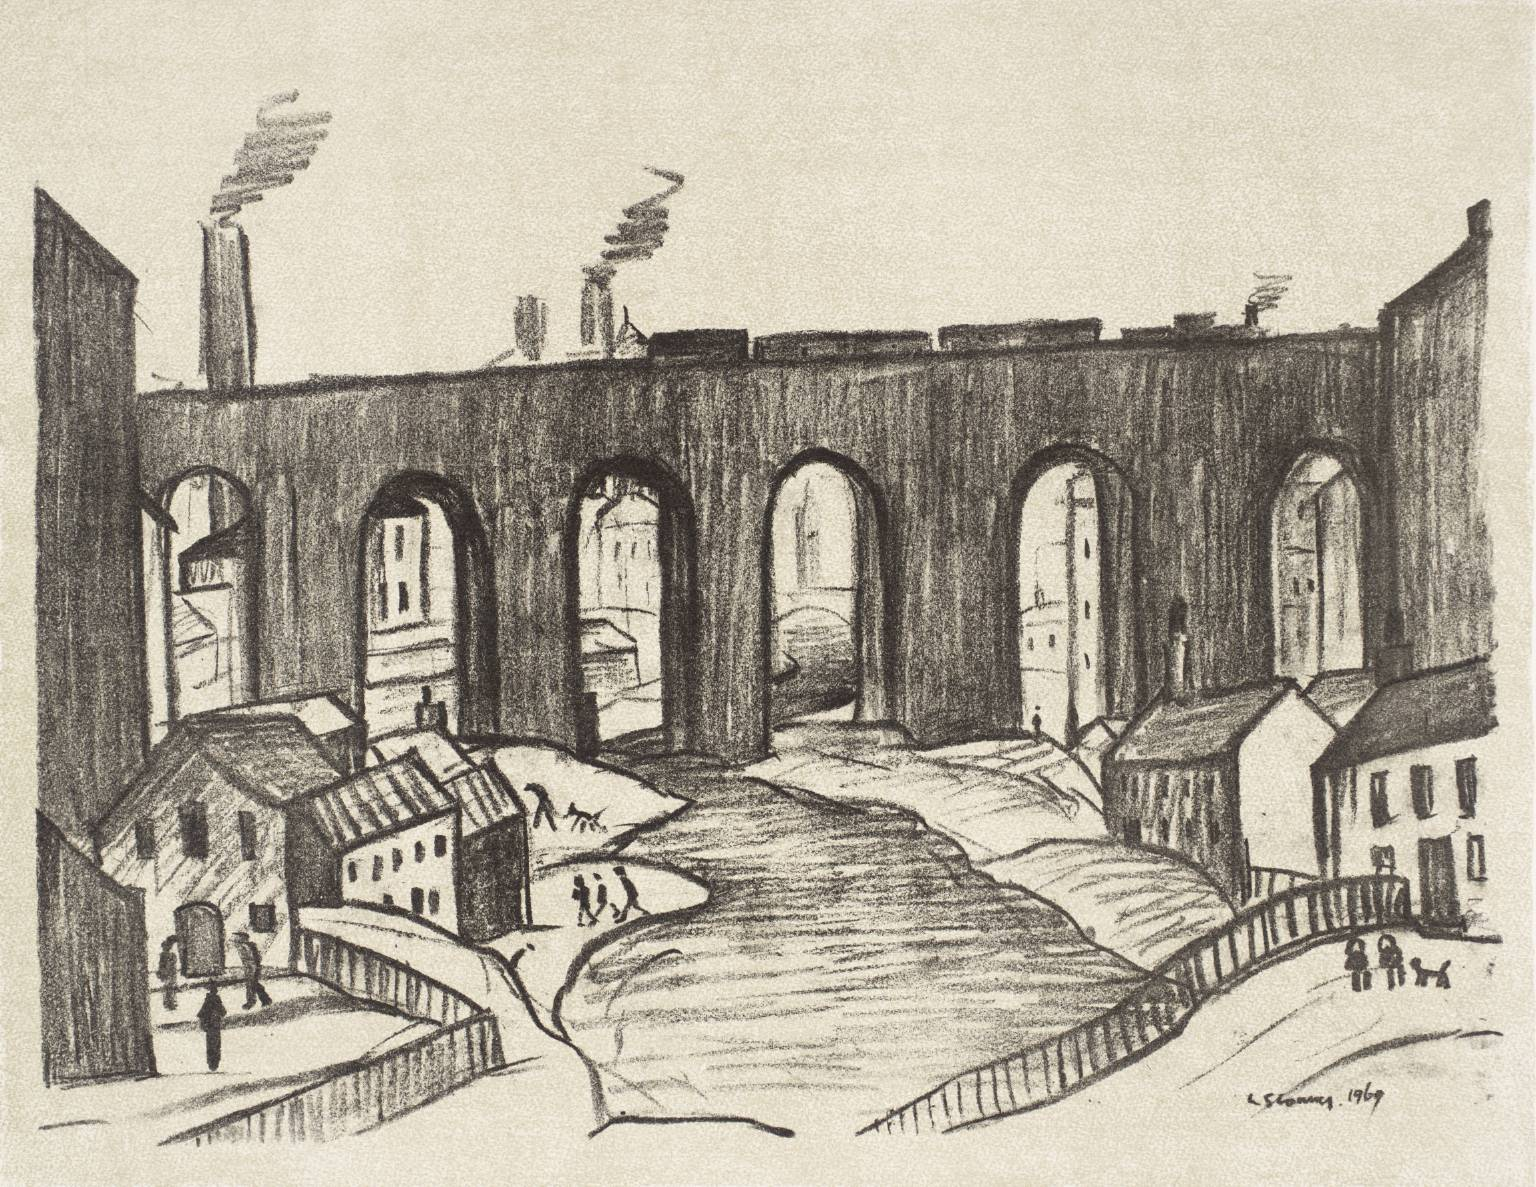 Lowry, The Viaduct, Stockport 1969